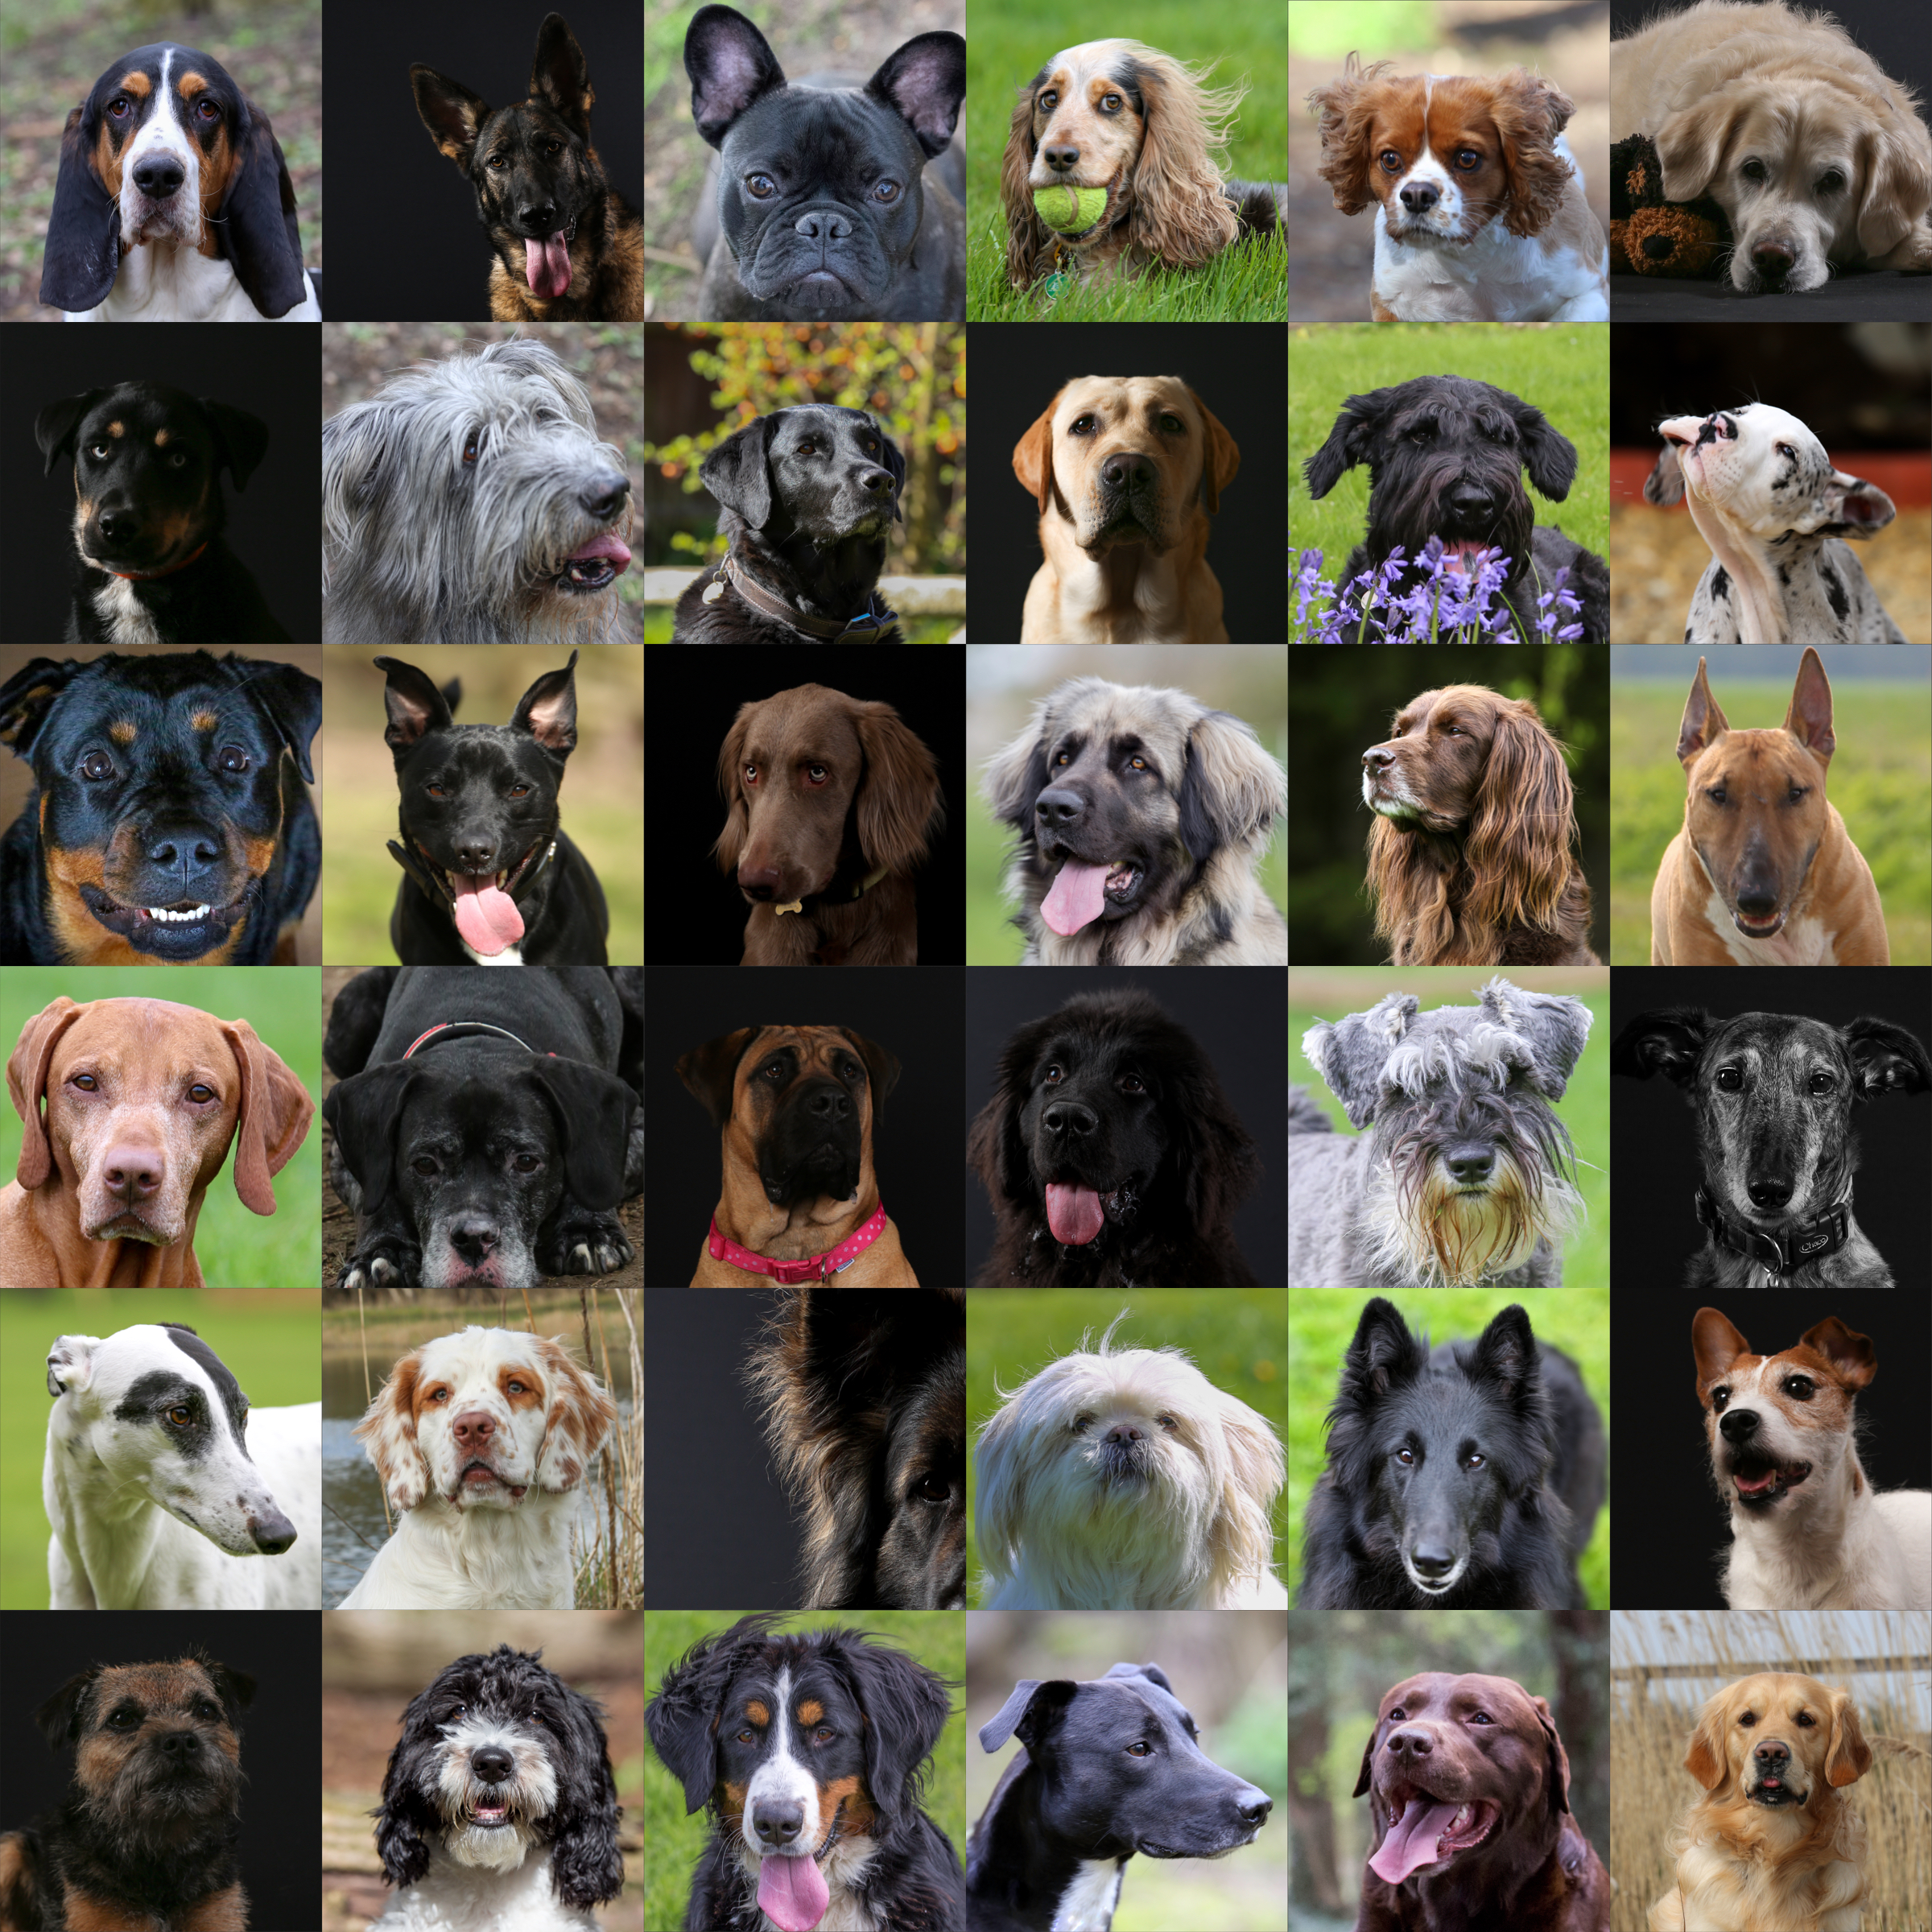 Some of the lovely dogs who participated in the 30 breeds charity fundraiser by Nia & James The Photographers